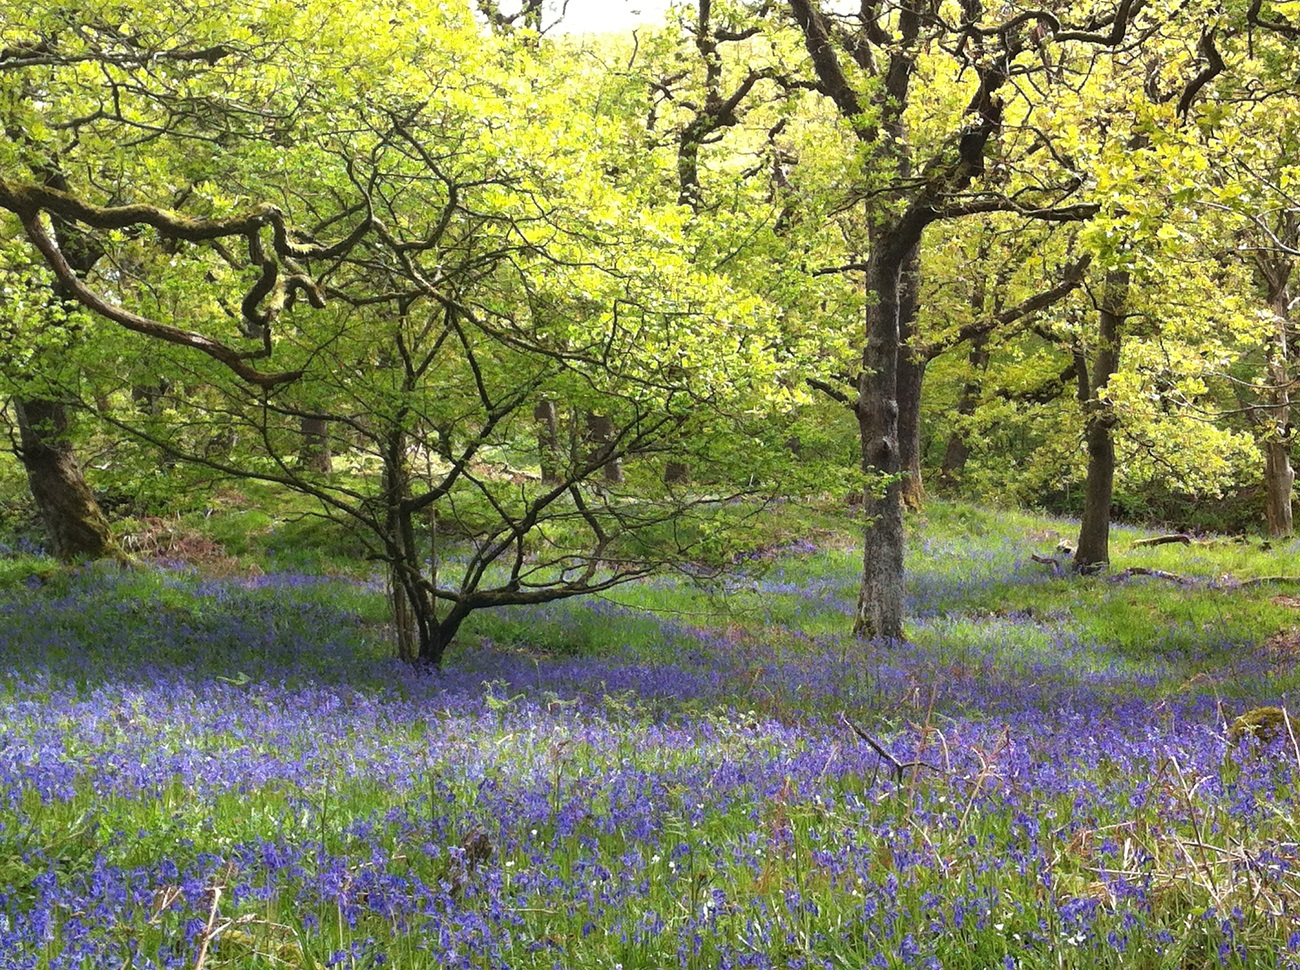 Bluebells at their peak on the Ingleton Waterfalls Walk today